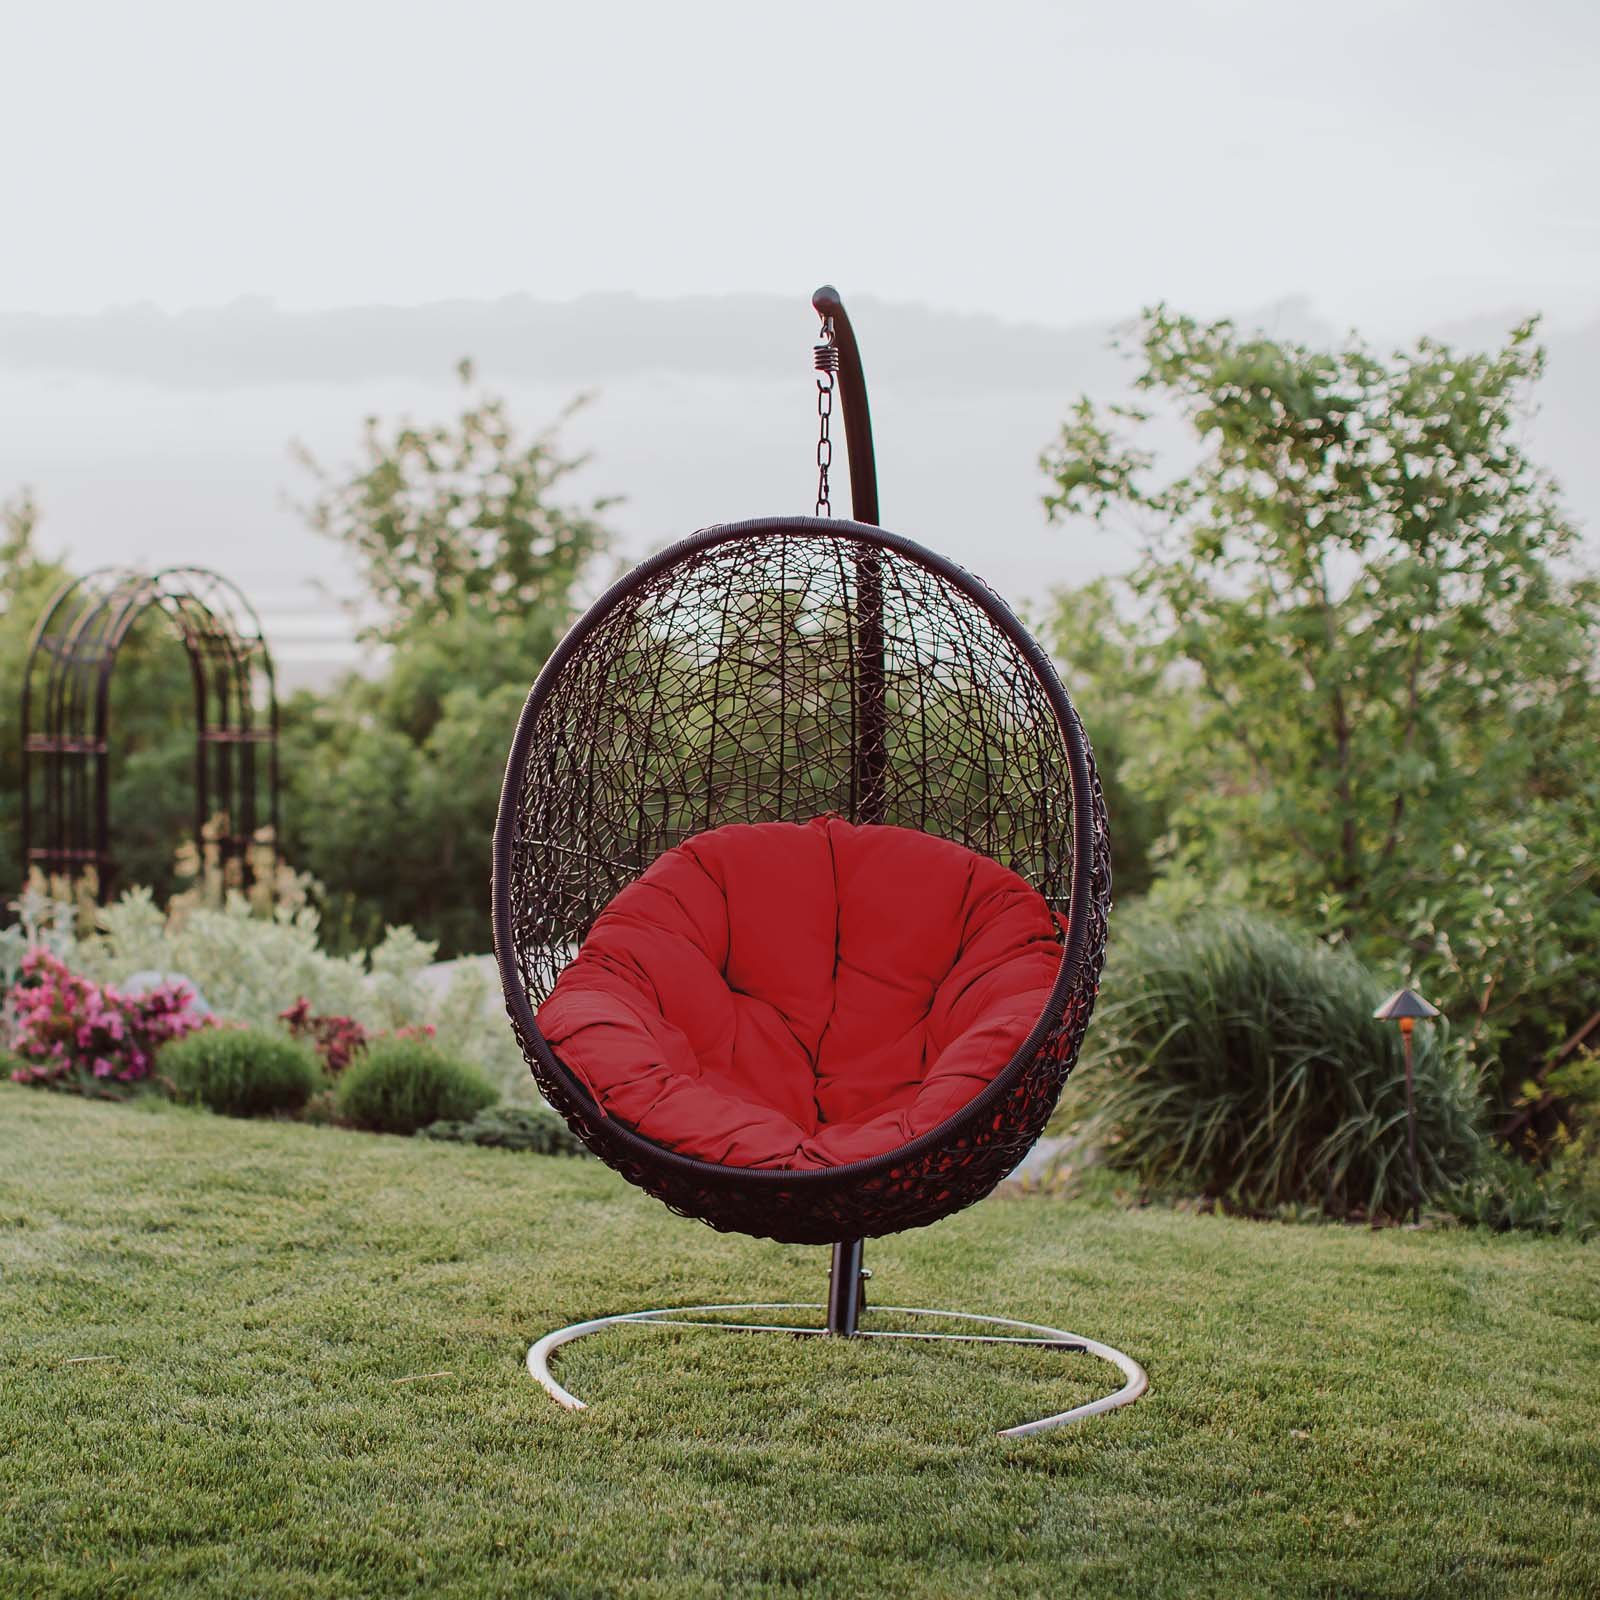 Modway EEI-739-RED-SET Encase Wicker Rattan Outdoor Patio Balcony Porch Lounge Egg Swing Chair Set with Stand Red